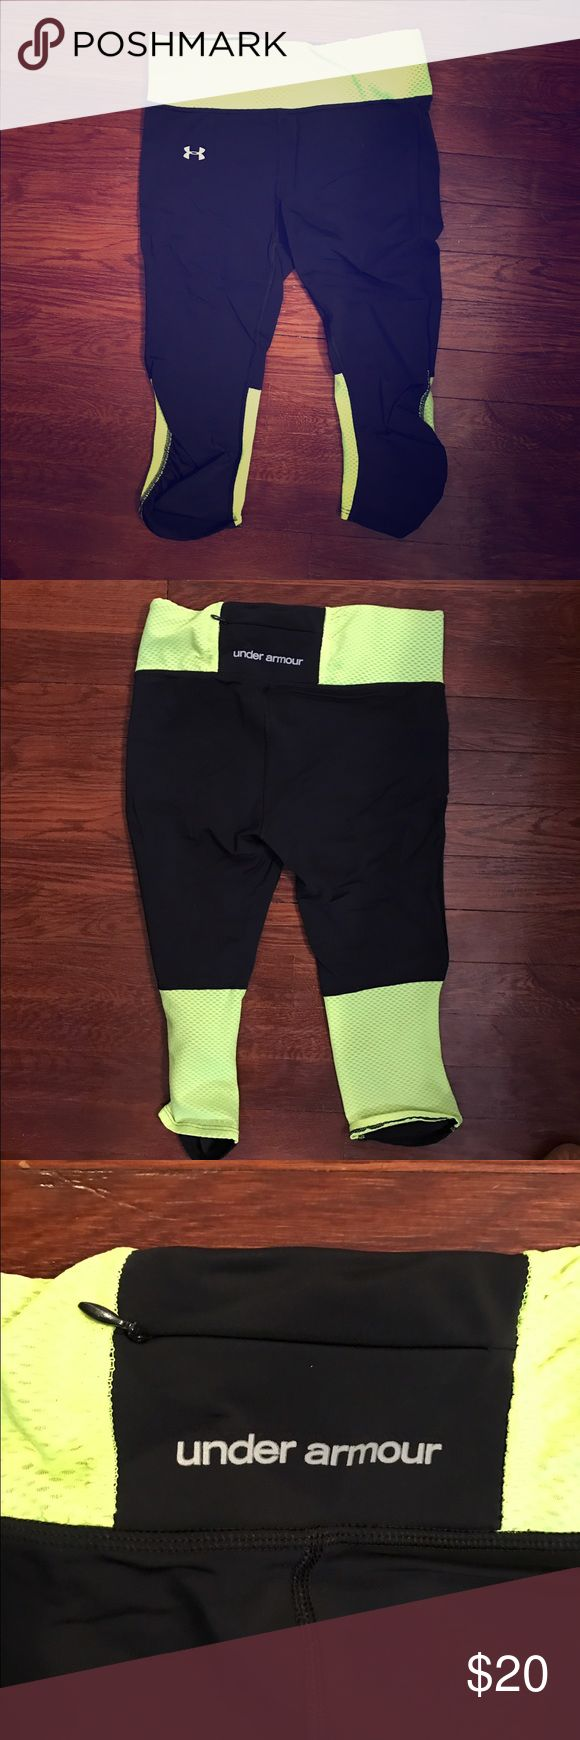 Under Armour cropped pants, size small. Black & neon yellow Under Armour heat gear cropped pants, size small. Back zipper pocket, great for outdoor activity! Under Armour Pants